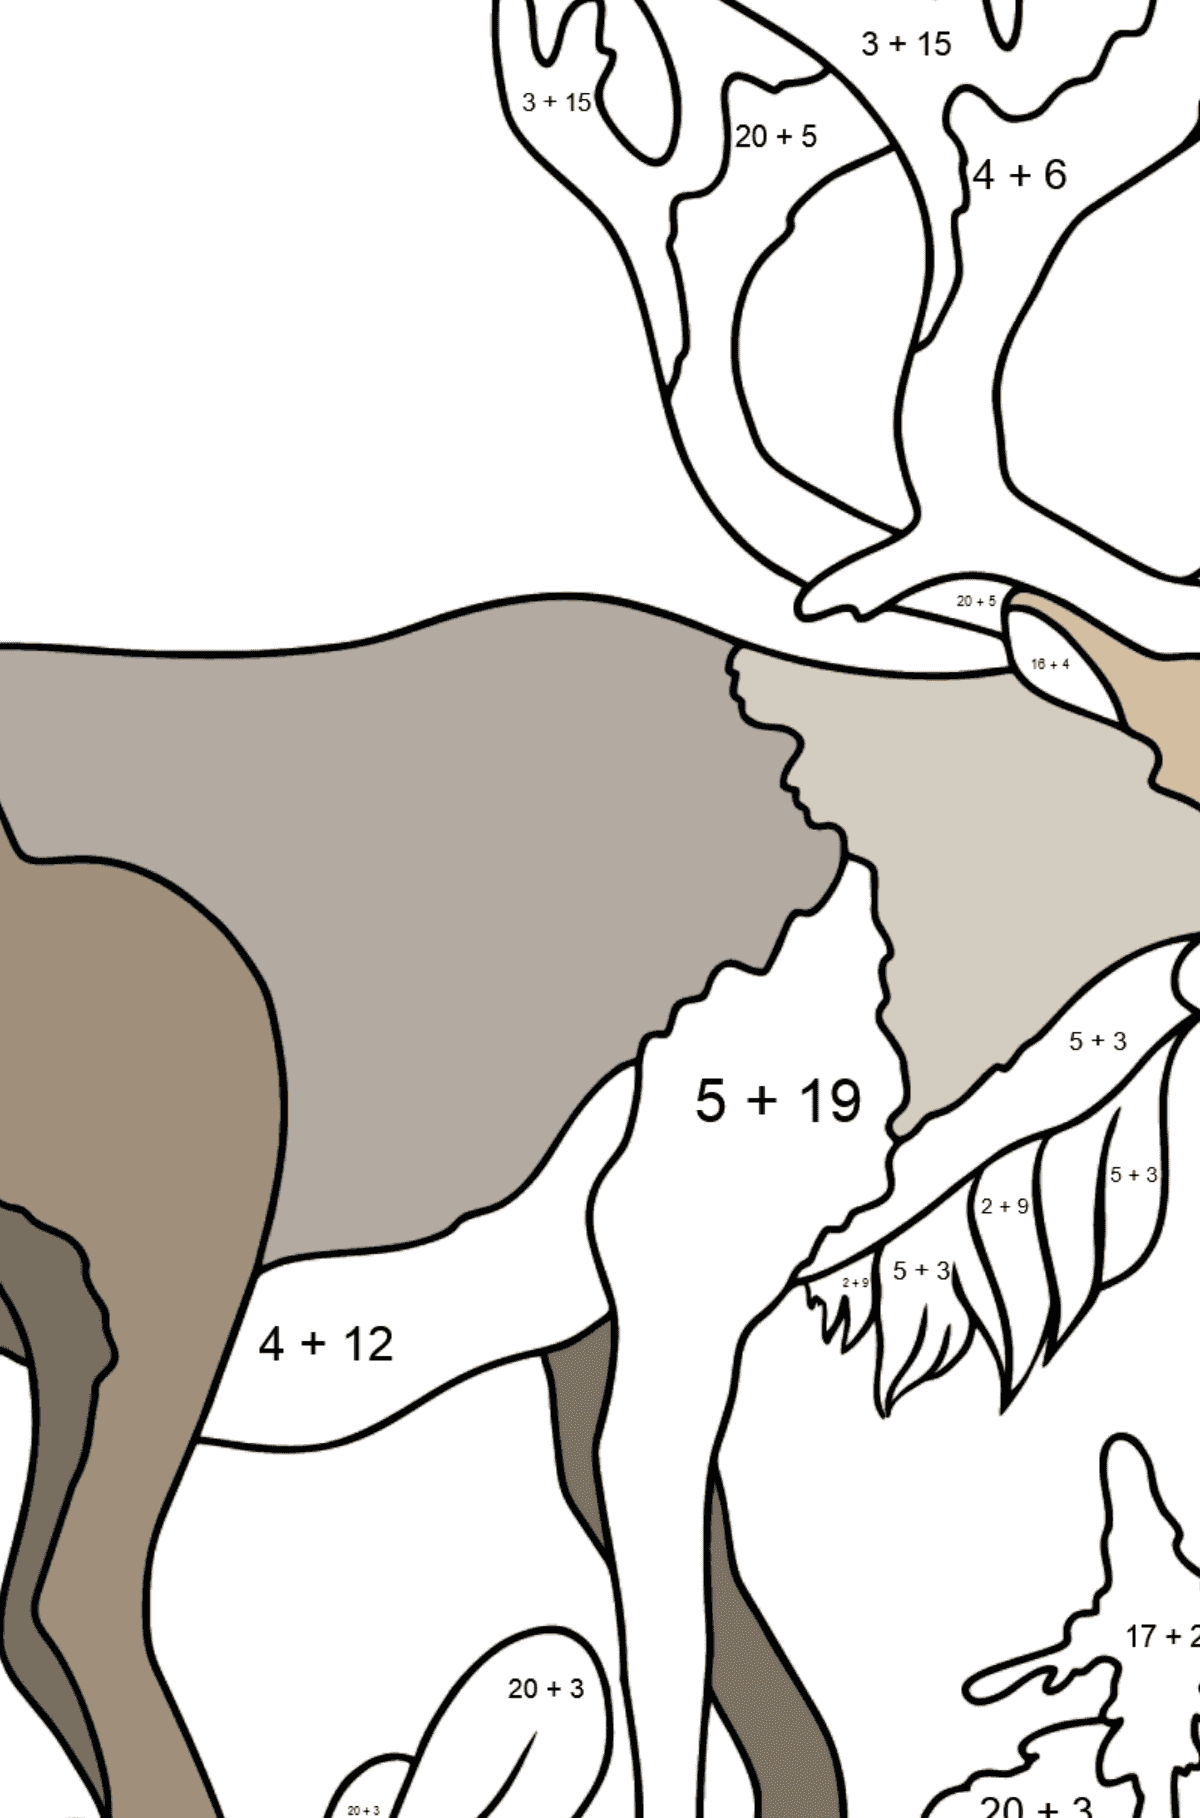 Coloring Page - A Noble Deer - Math Coloring - Addition for Kids